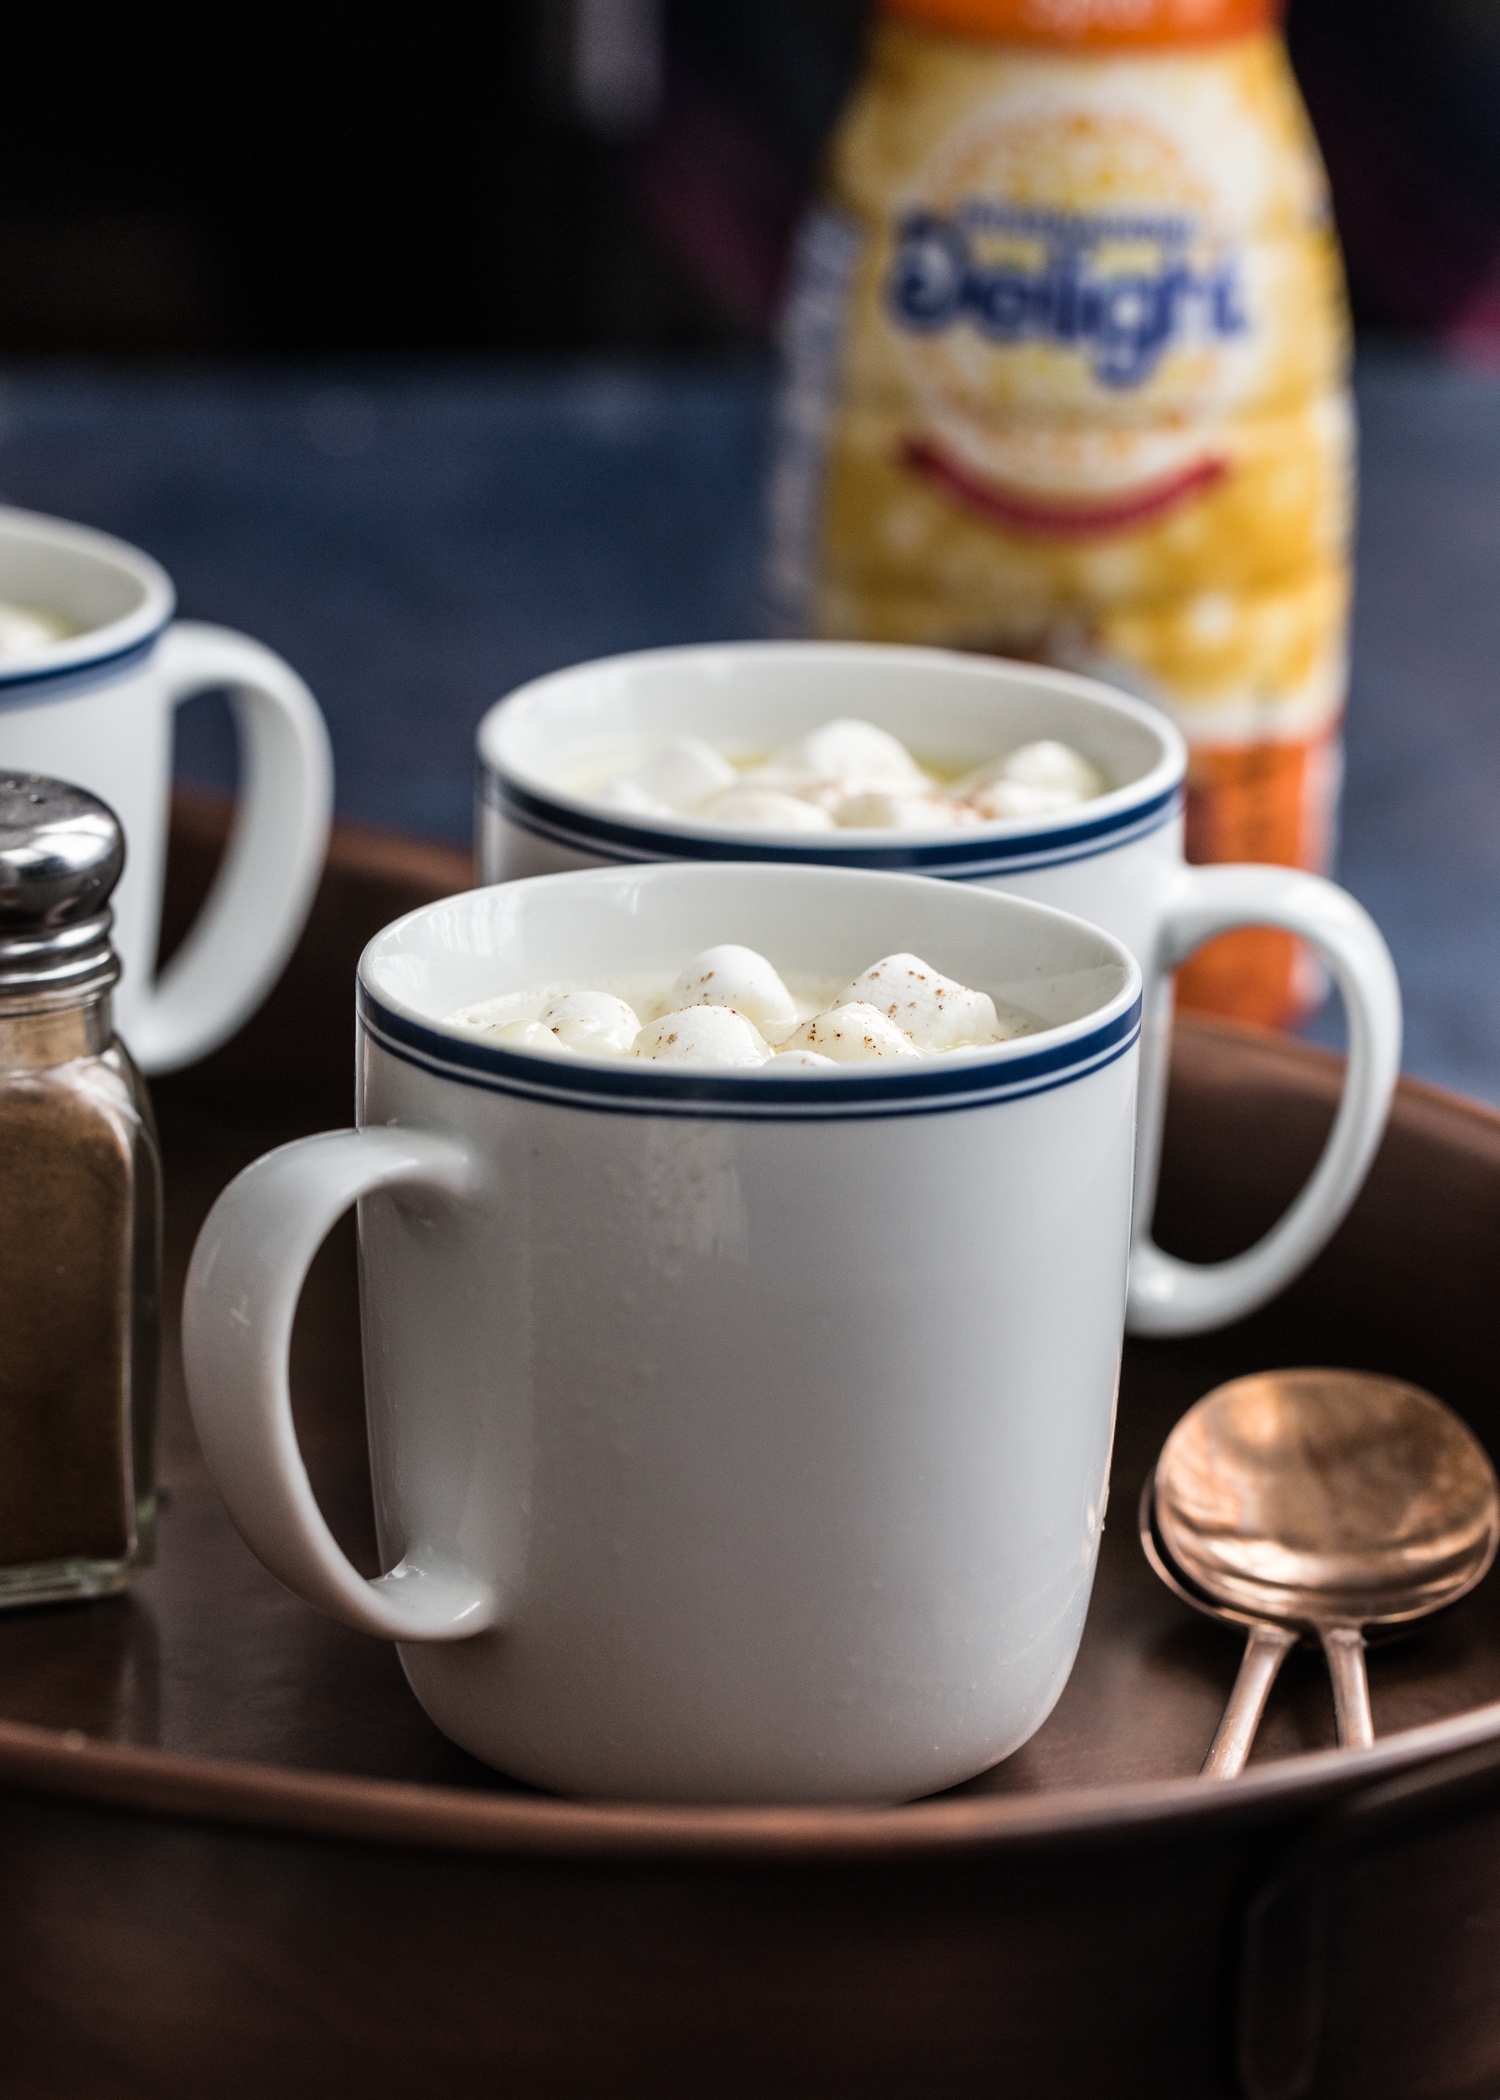 Pumpkin Spice White Hot Chocolate made with International Delight Pumpkin Spice Coffee Creamer